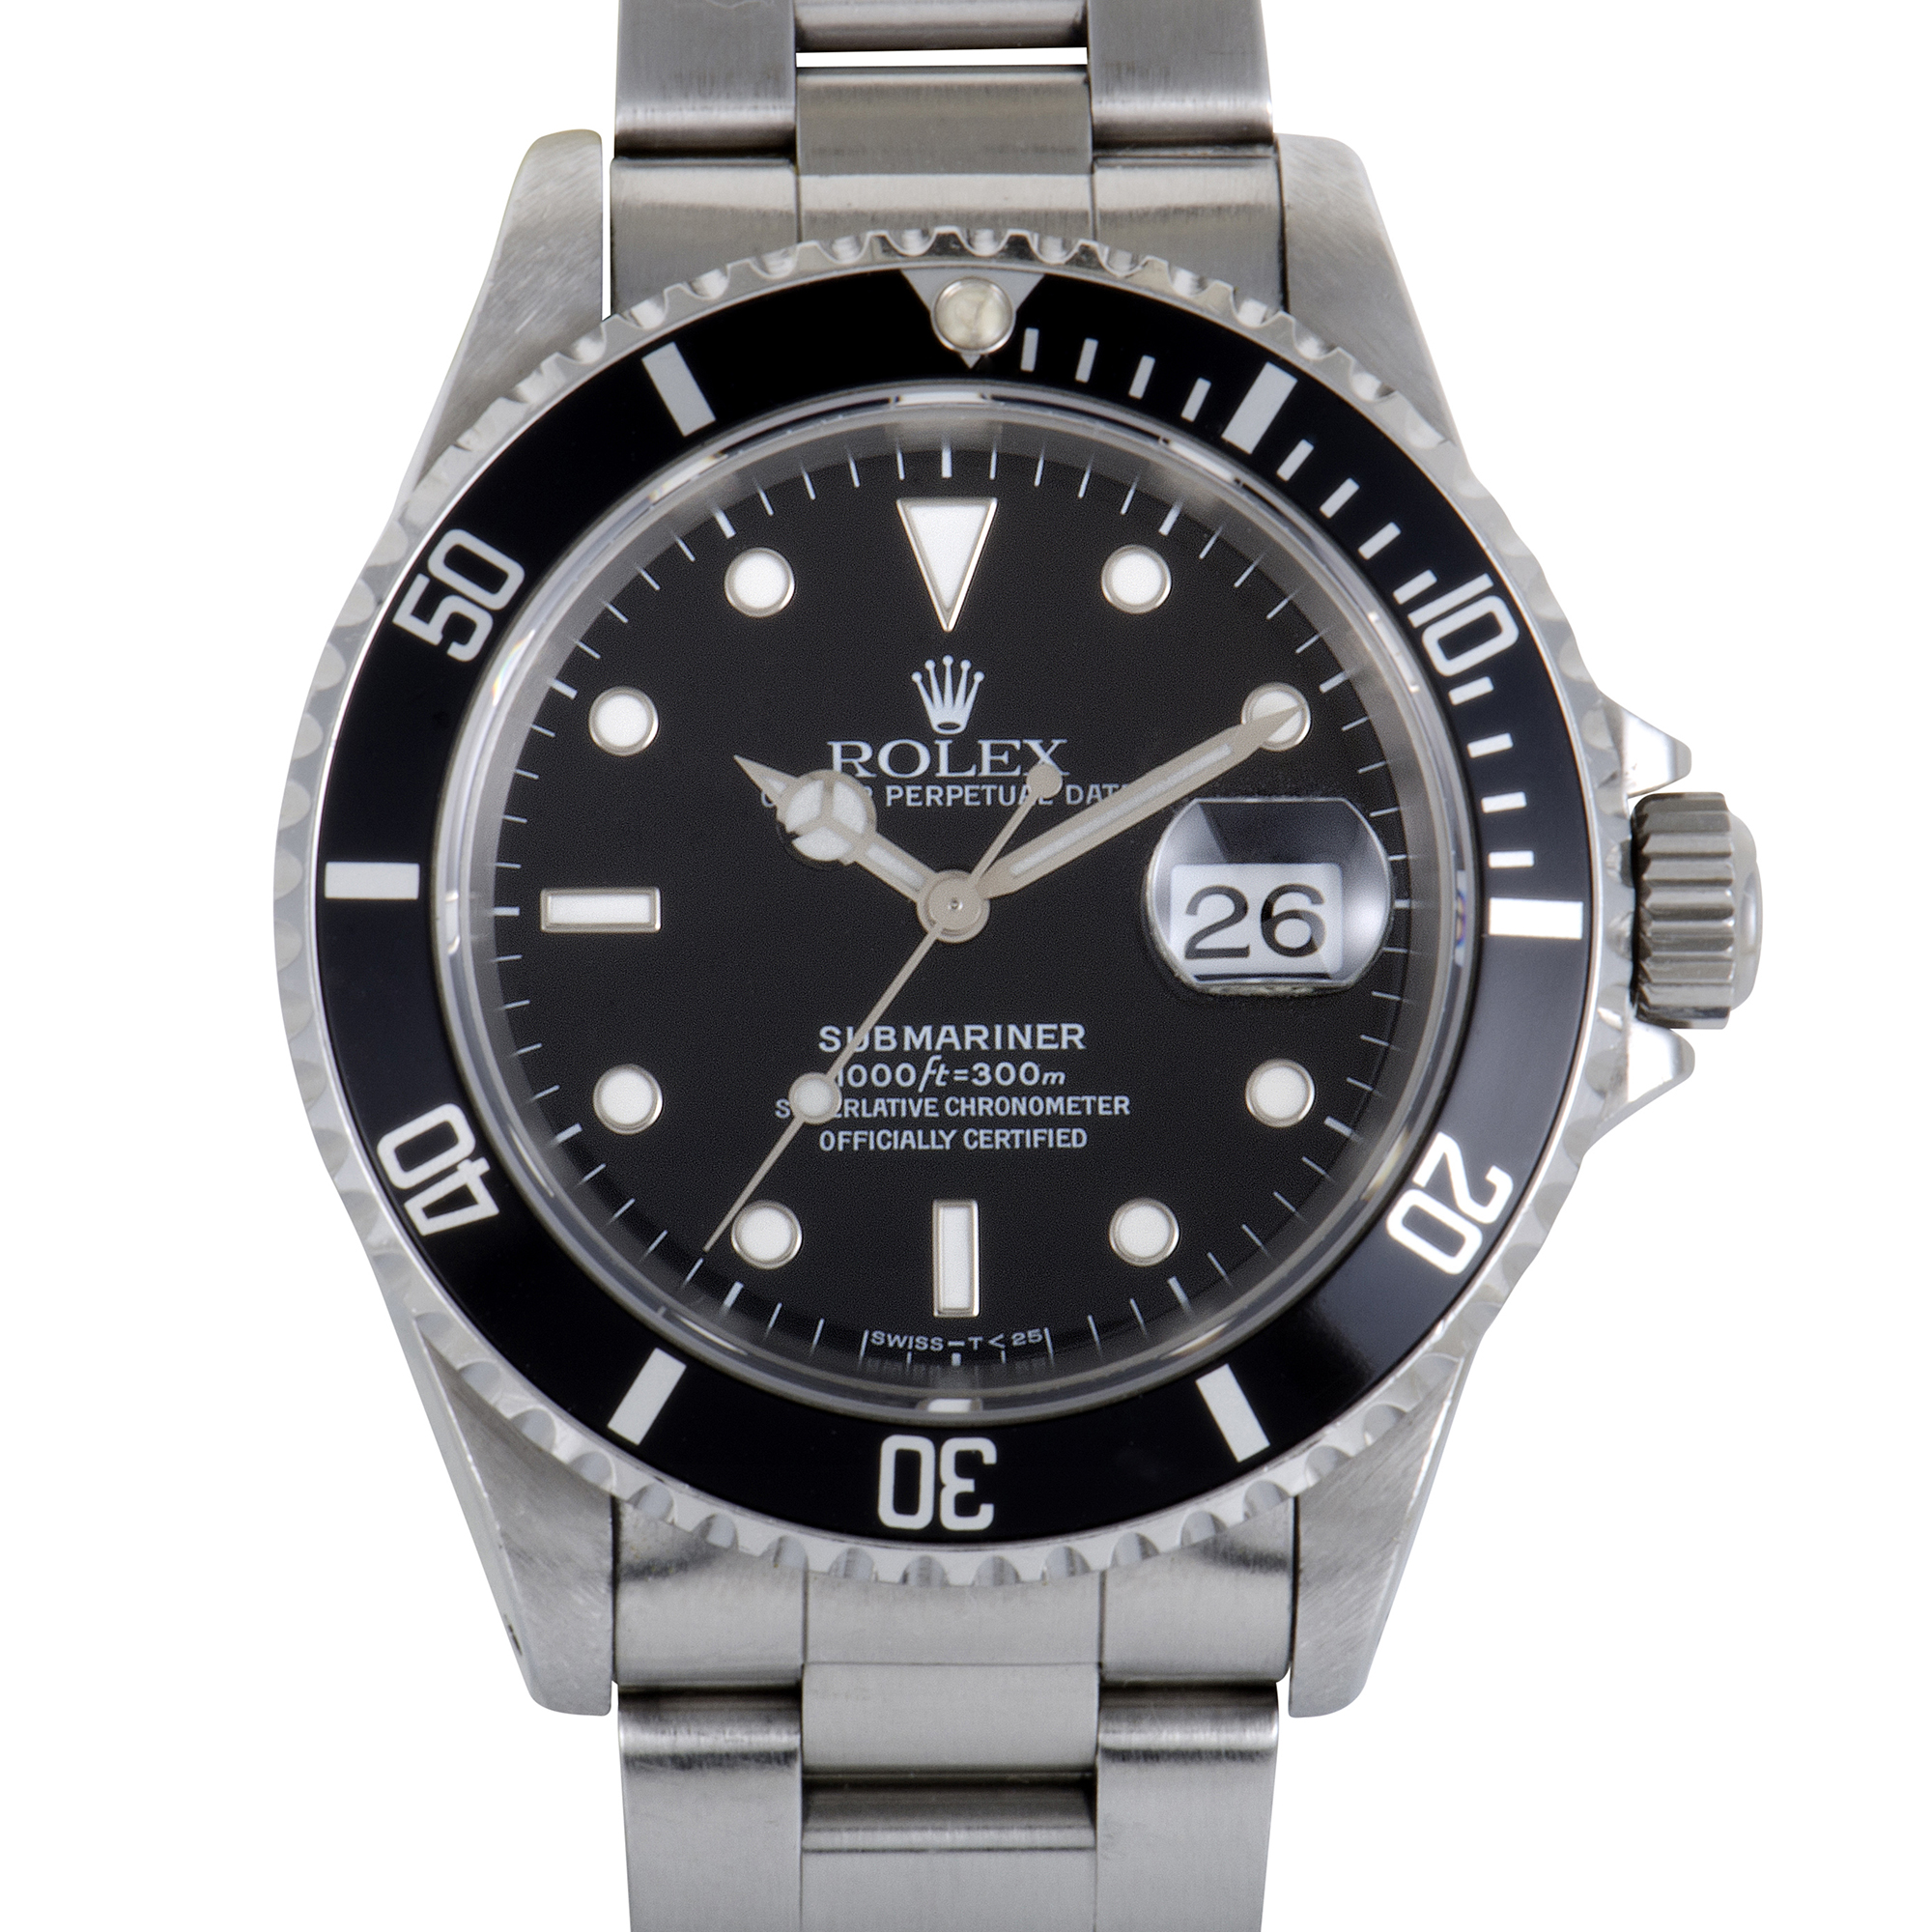 Rolex oyster perpetual date submariner in Brisbane